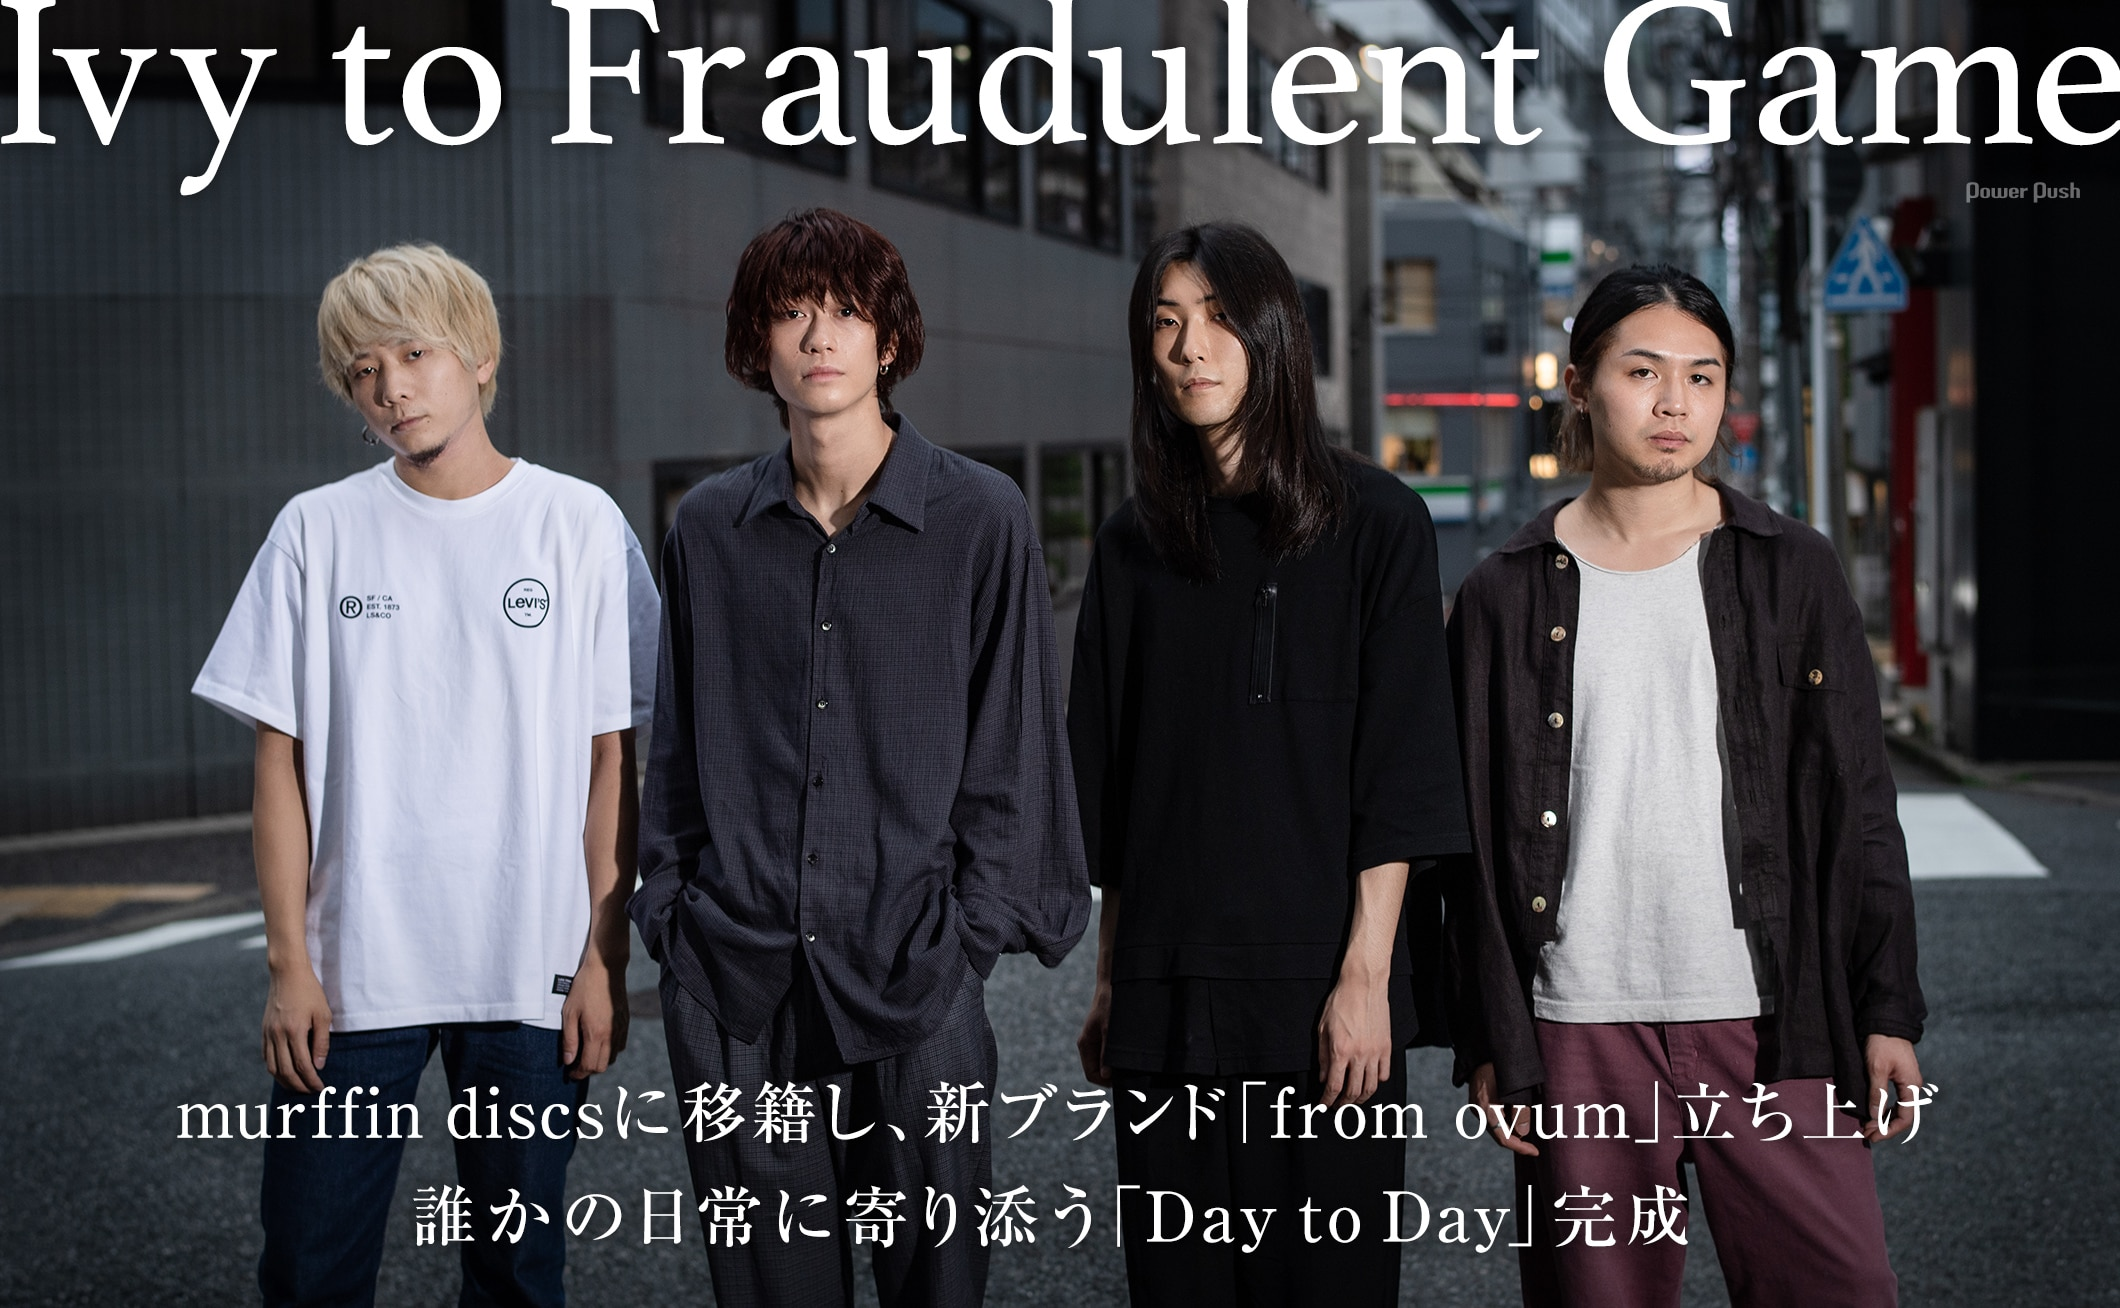 Ivy to Fraudulent Game|murffin discsに移籍し、新ブランド「from ovum」立ち上げ 誰かの日常に寄り添う「Day to Day」完成